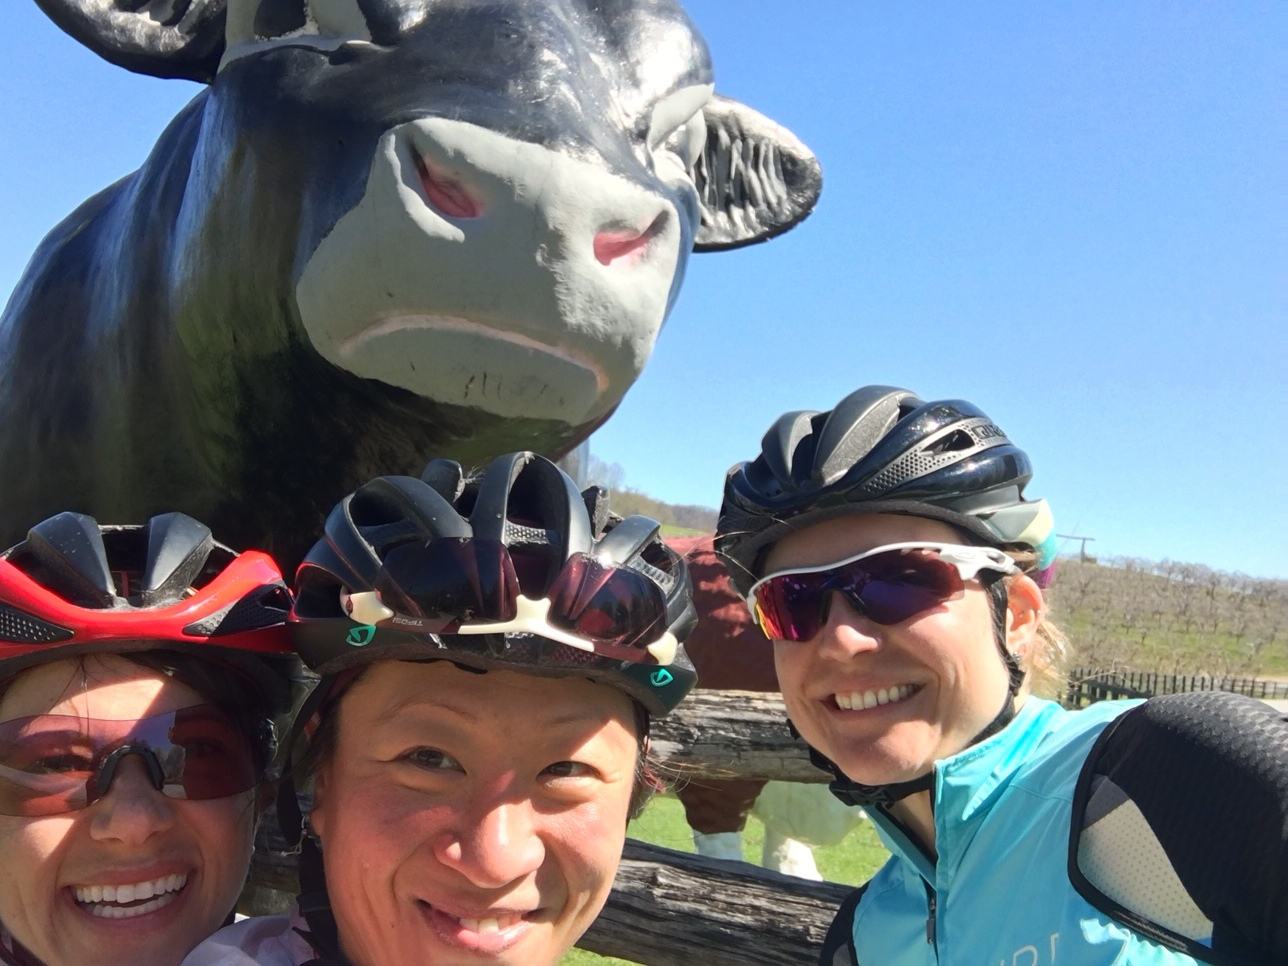 Anina, Jrho, and Sierra Find a Cow